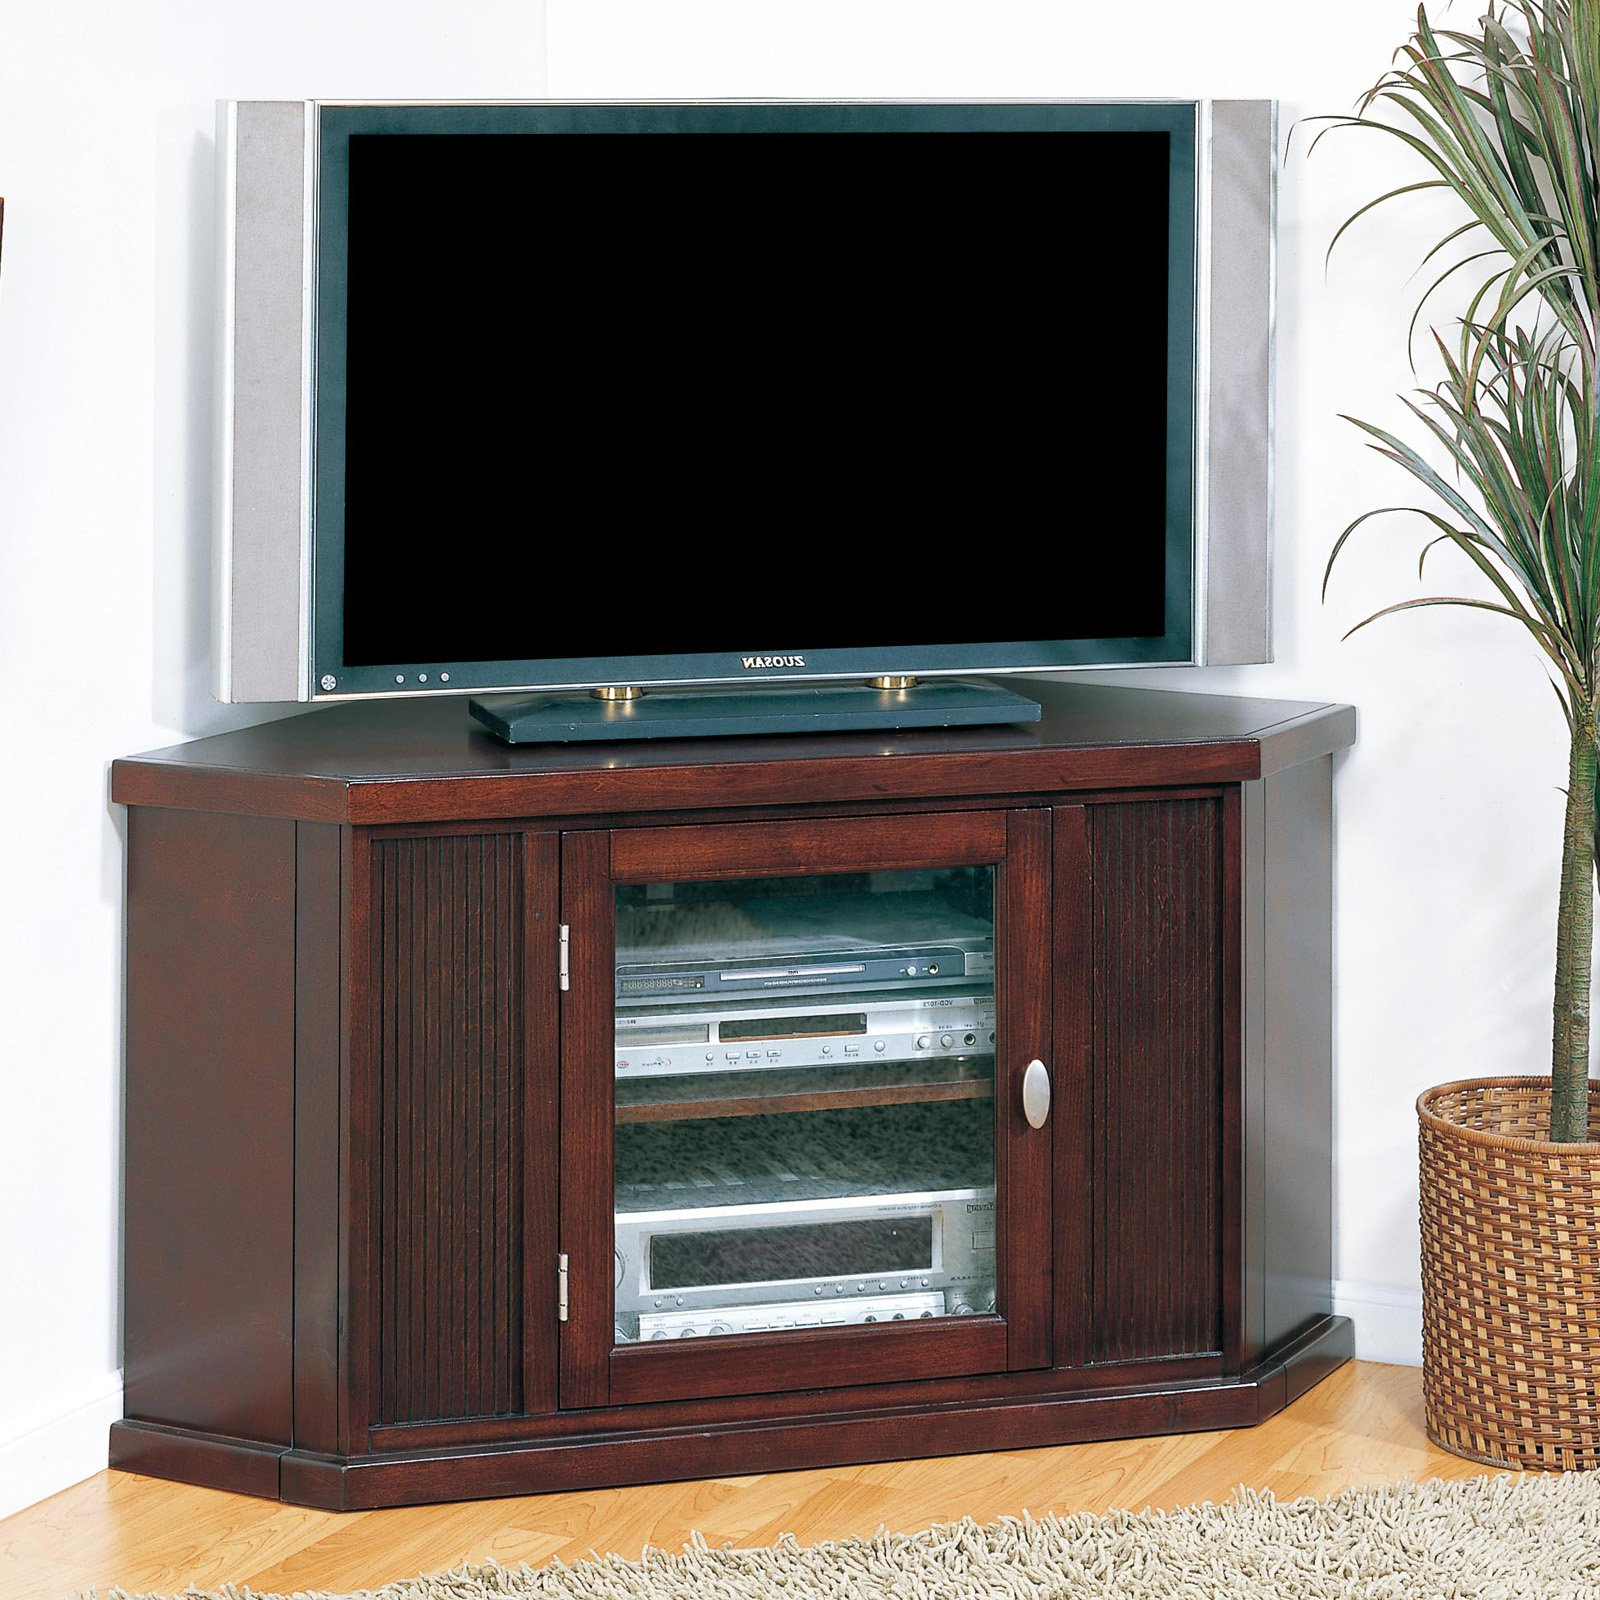 """Preferred Leick Home Riley Holliday 46"""" Corner Tv Stand For Tv's Up Within Evelynn Tv Stands For Tvs Up To 60"""" (View 22 of 25)"""